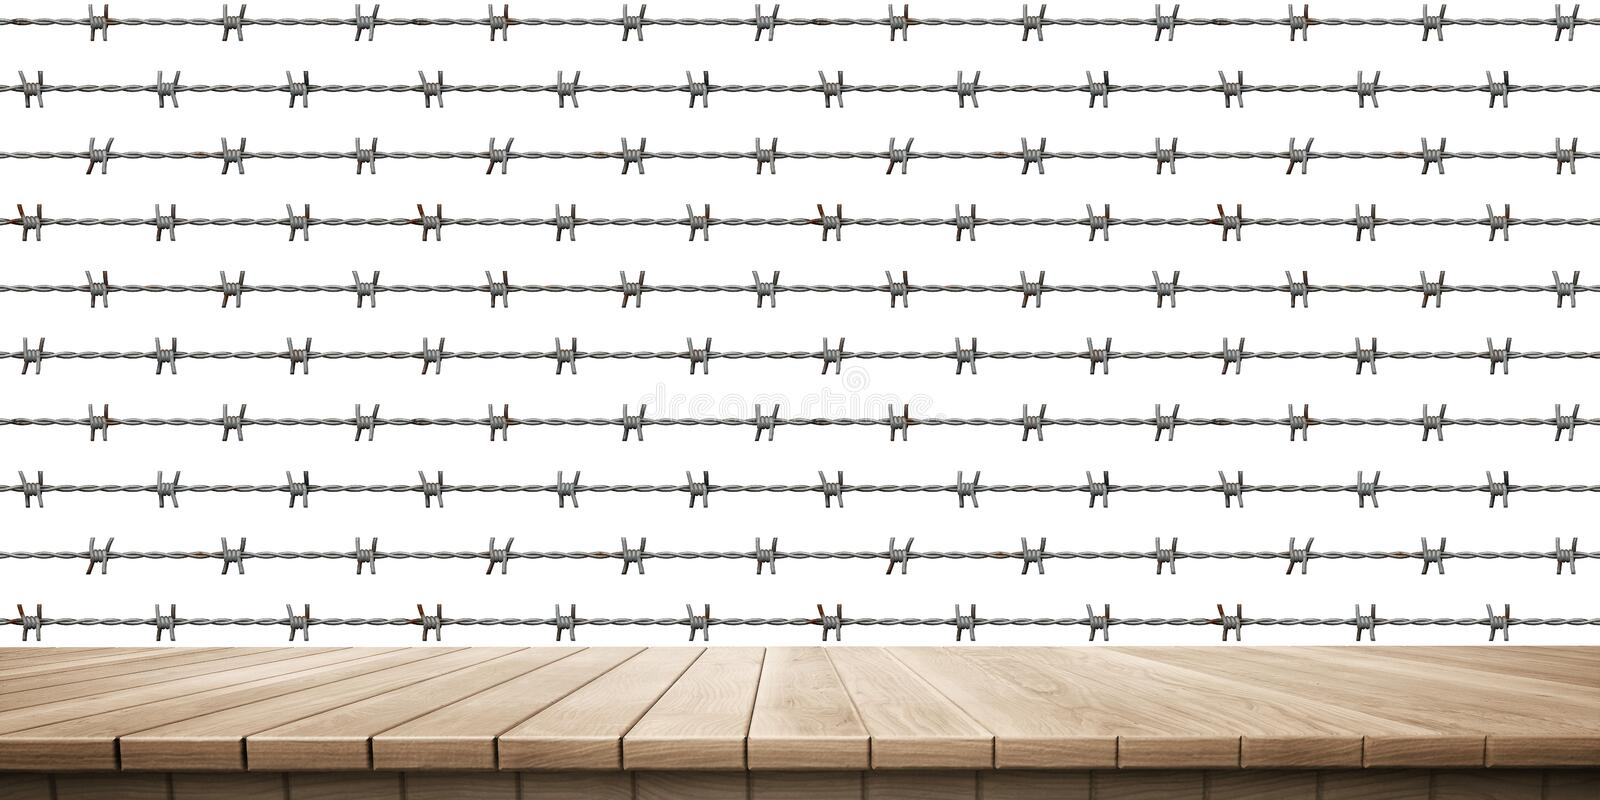 Closeup of colorful wooden platform and fence/railing background, front view. High-resolution 3D CG rendering illustration royalty free illustration